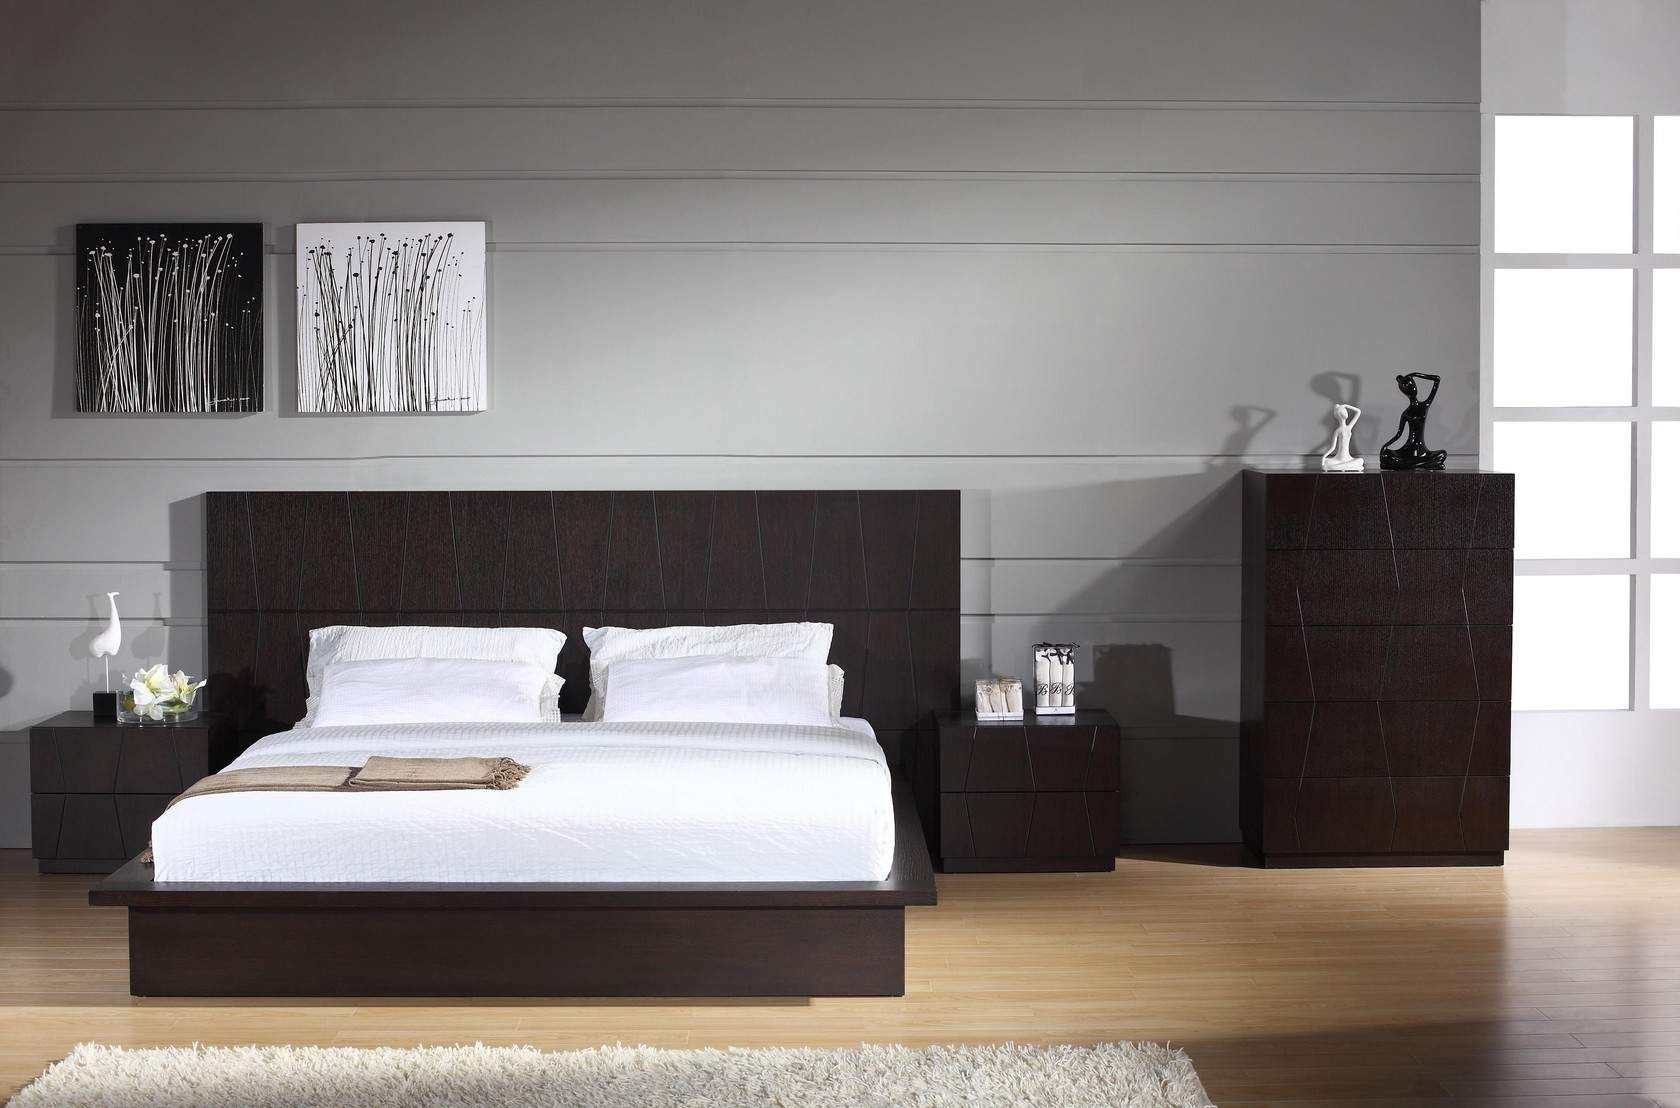 modern bedroom furniture - Contemporary Bedroom Decor